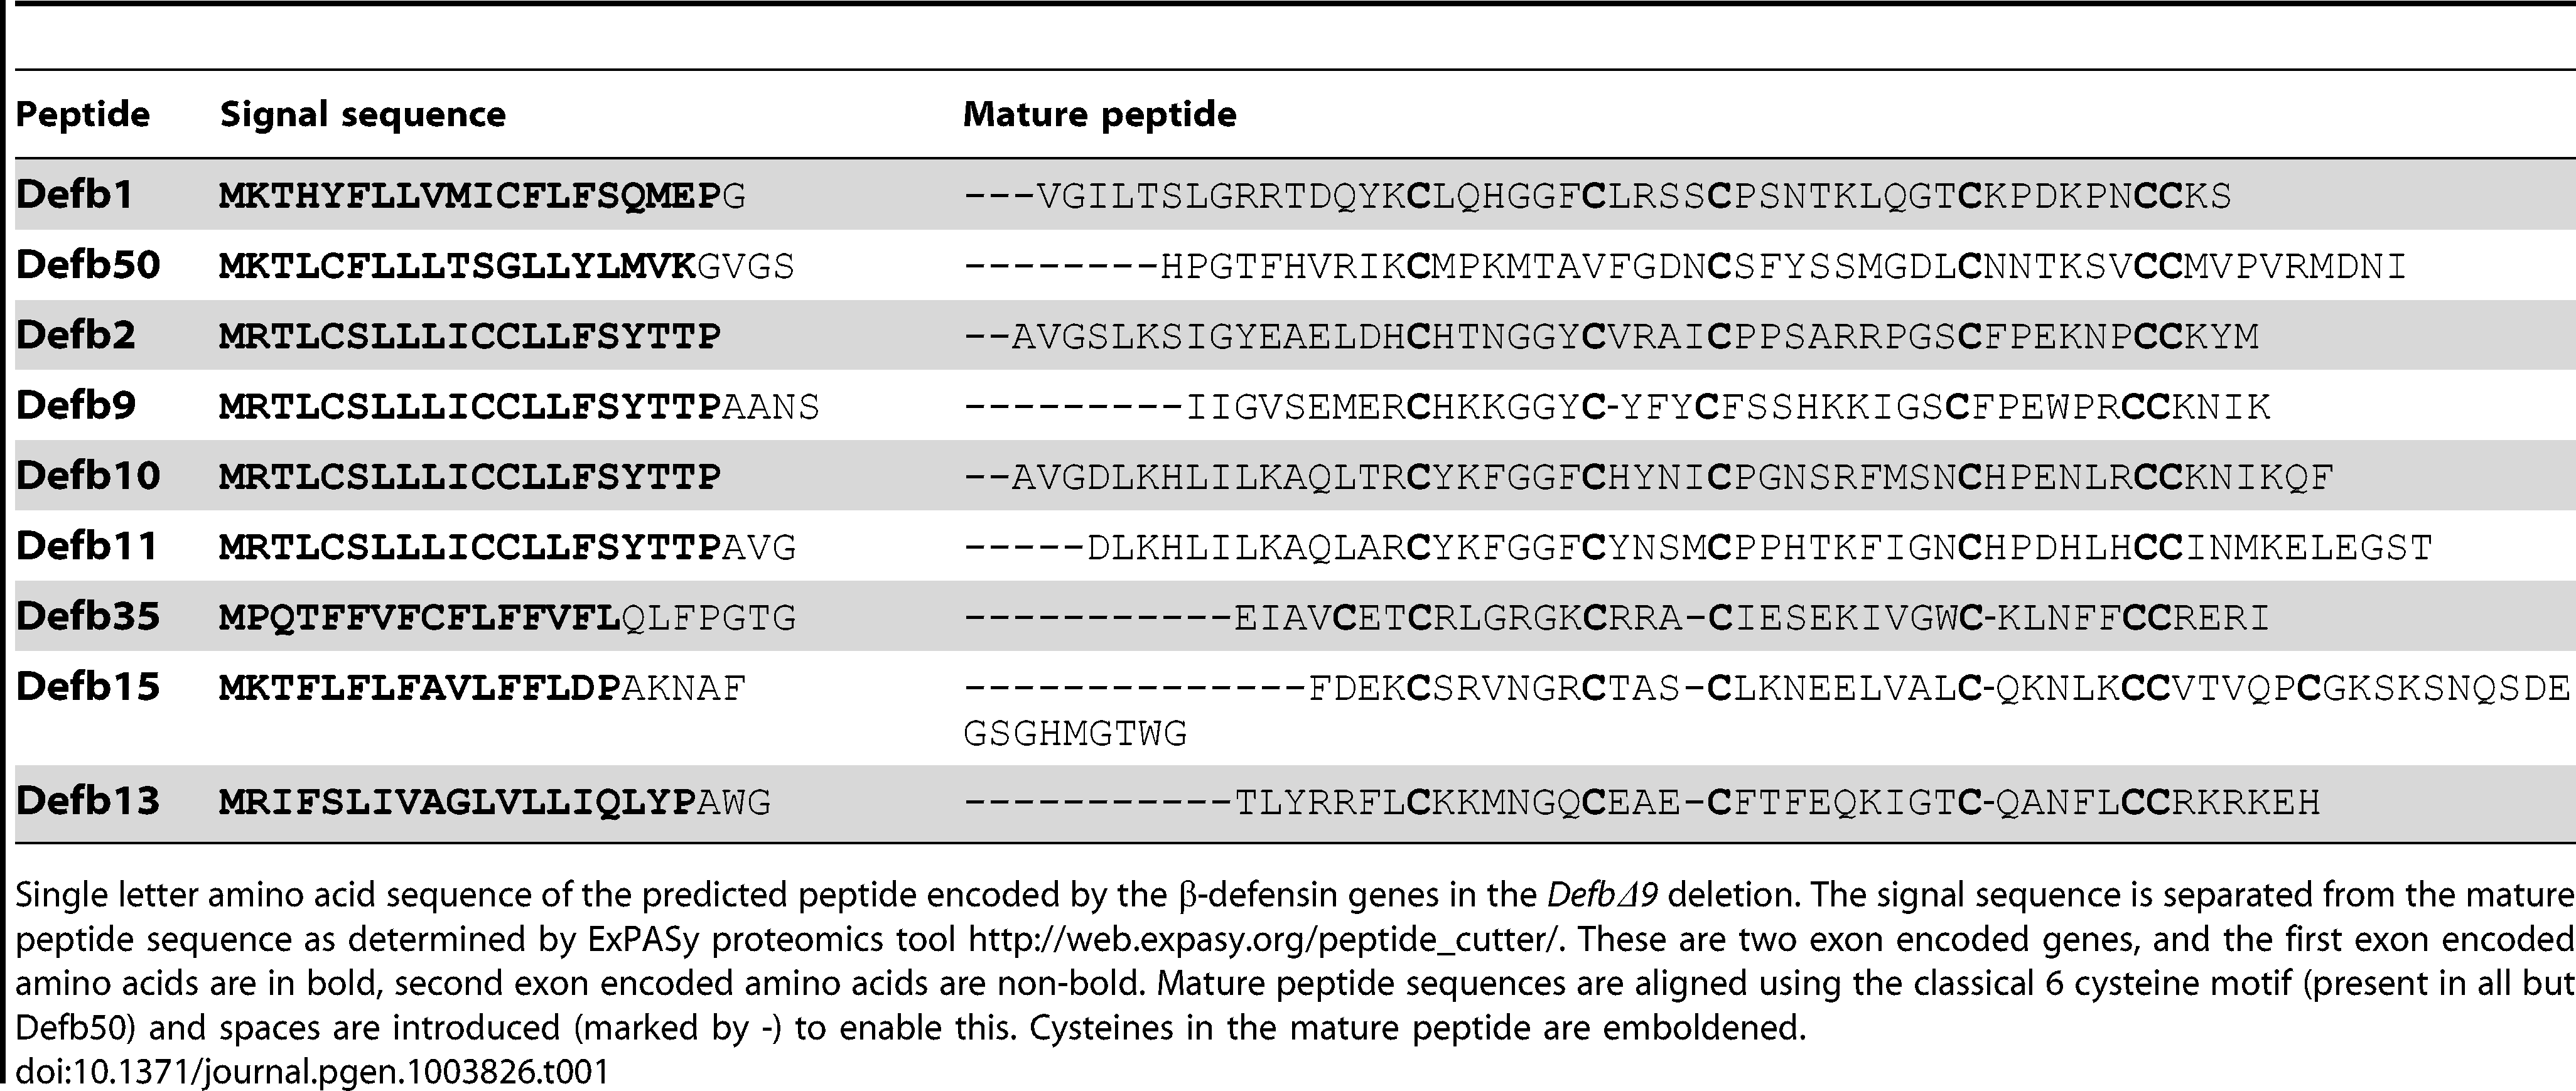 Peptide sequence of β-defensins deleted in DefbΔ9 deletion.